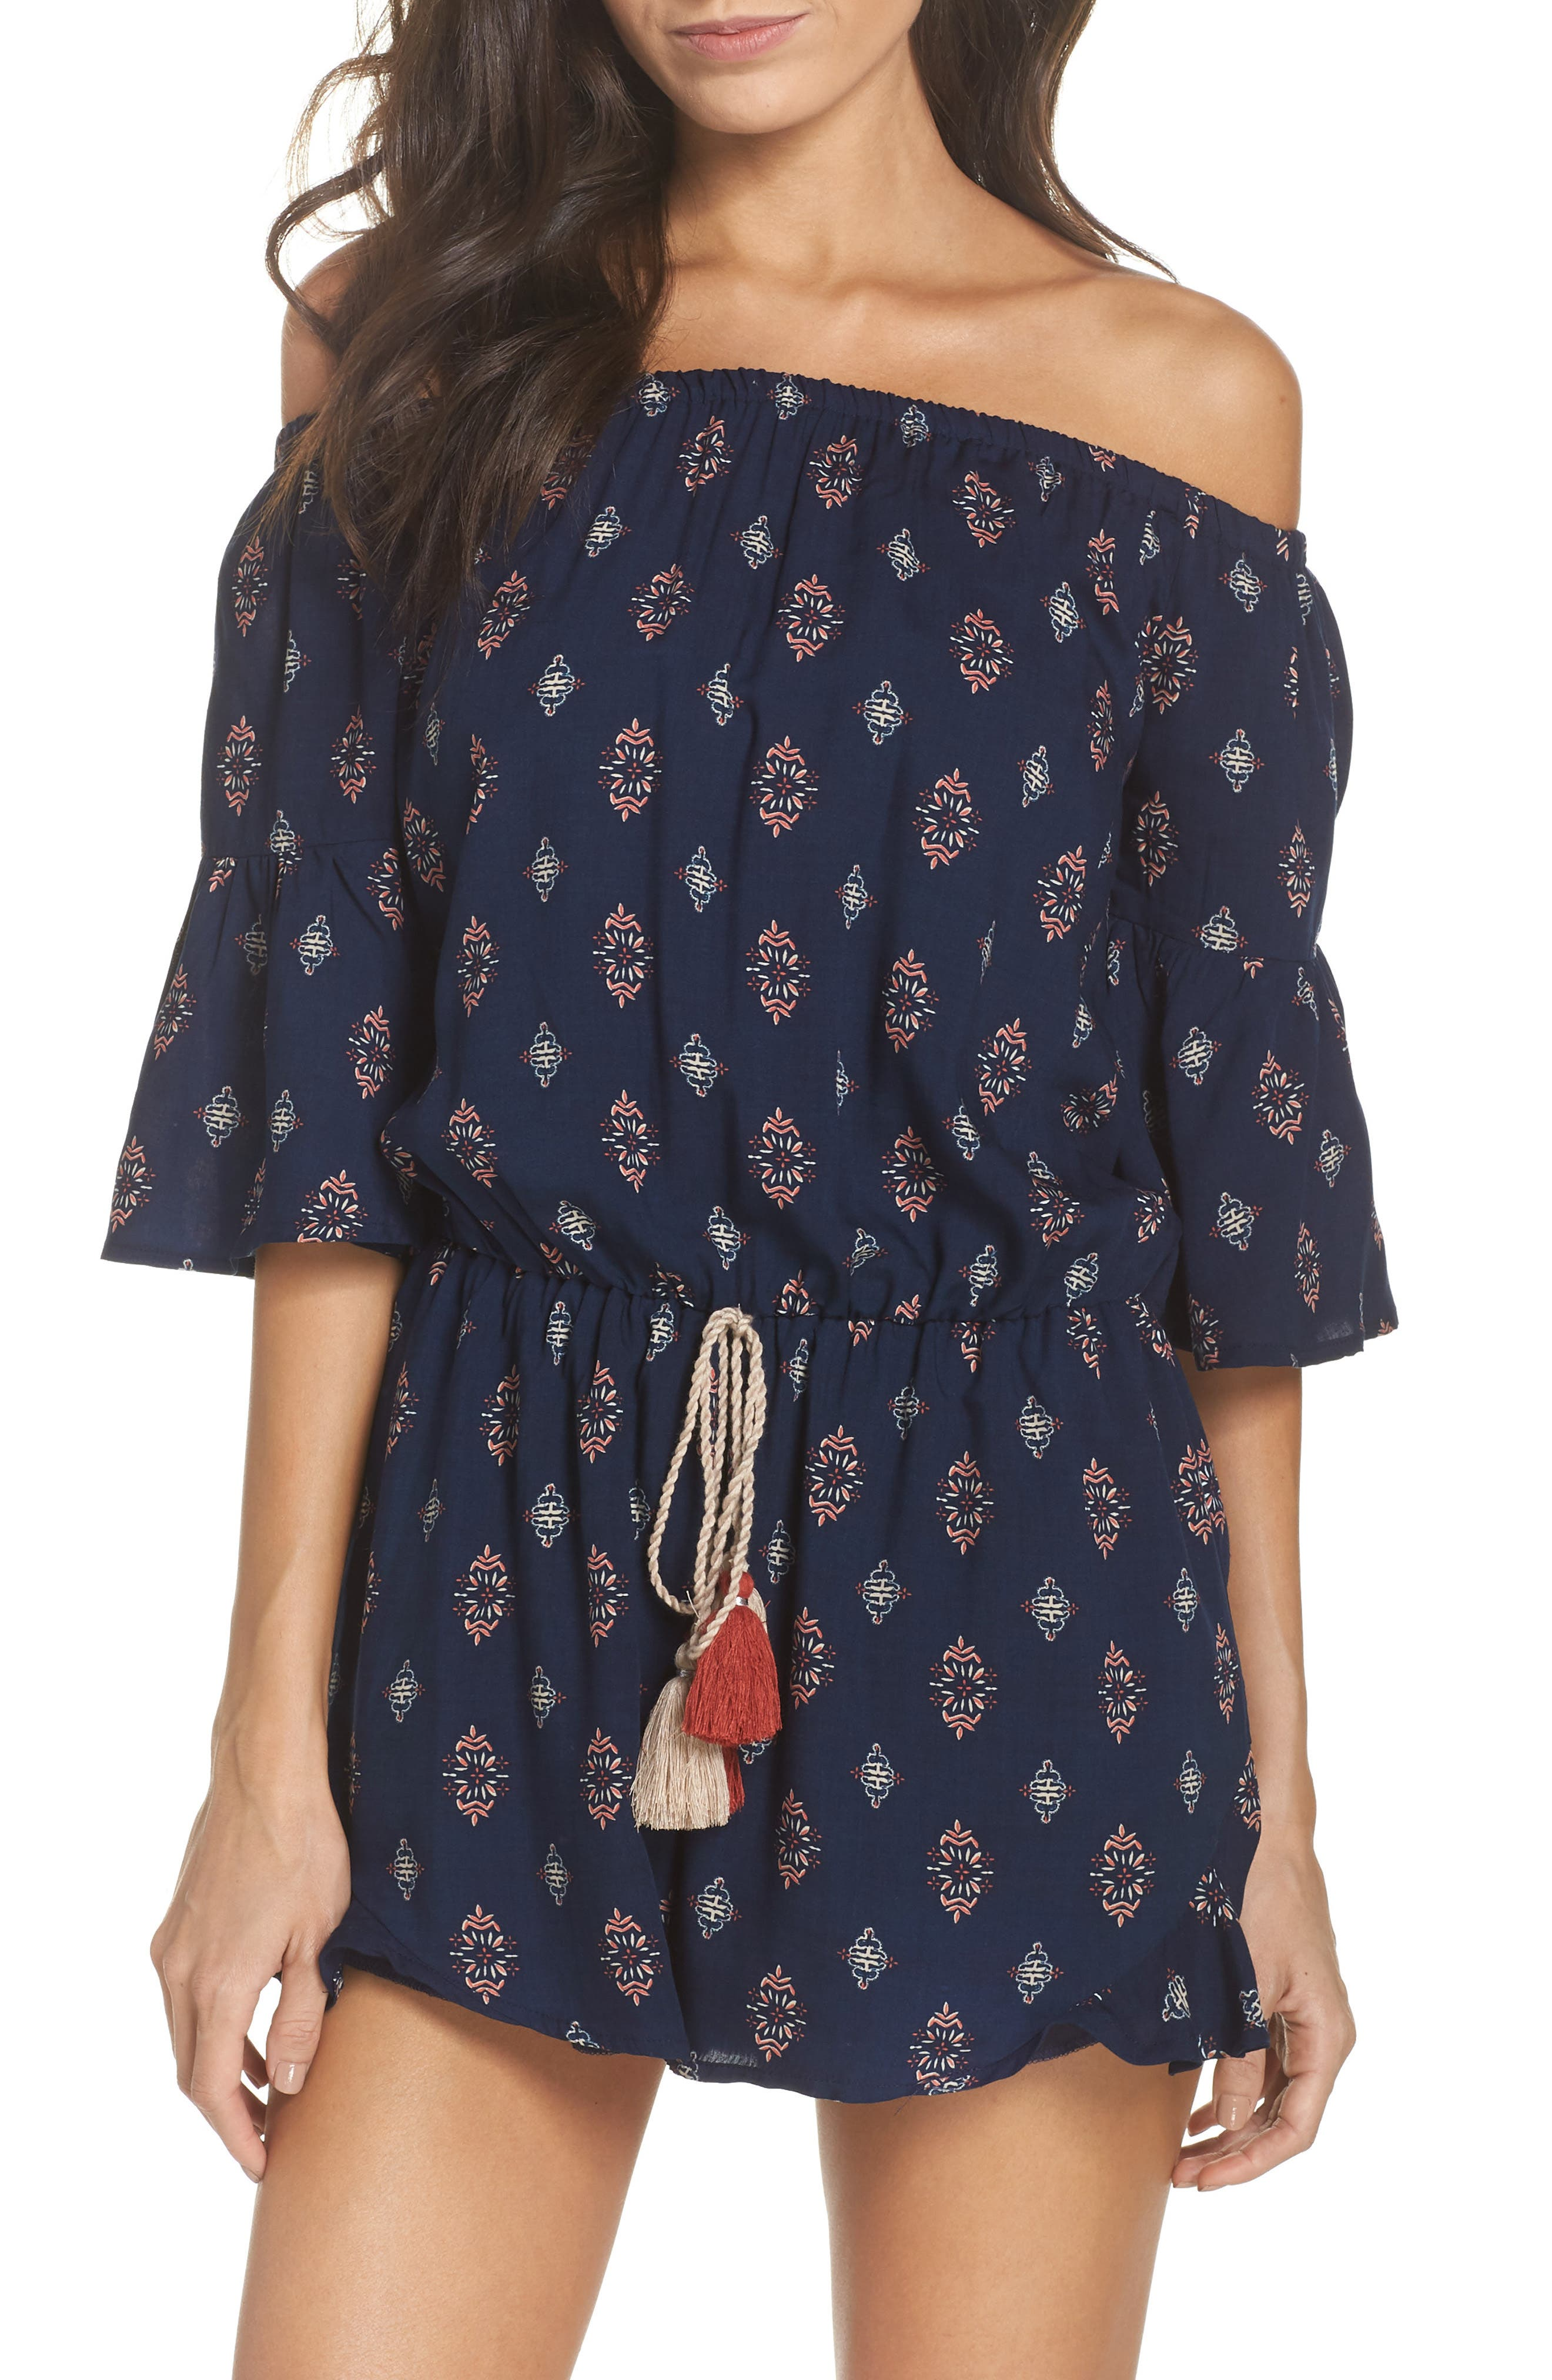 Off the Shoulder Cover-Up Romper,                             Main thumbnail 1, color,                             410